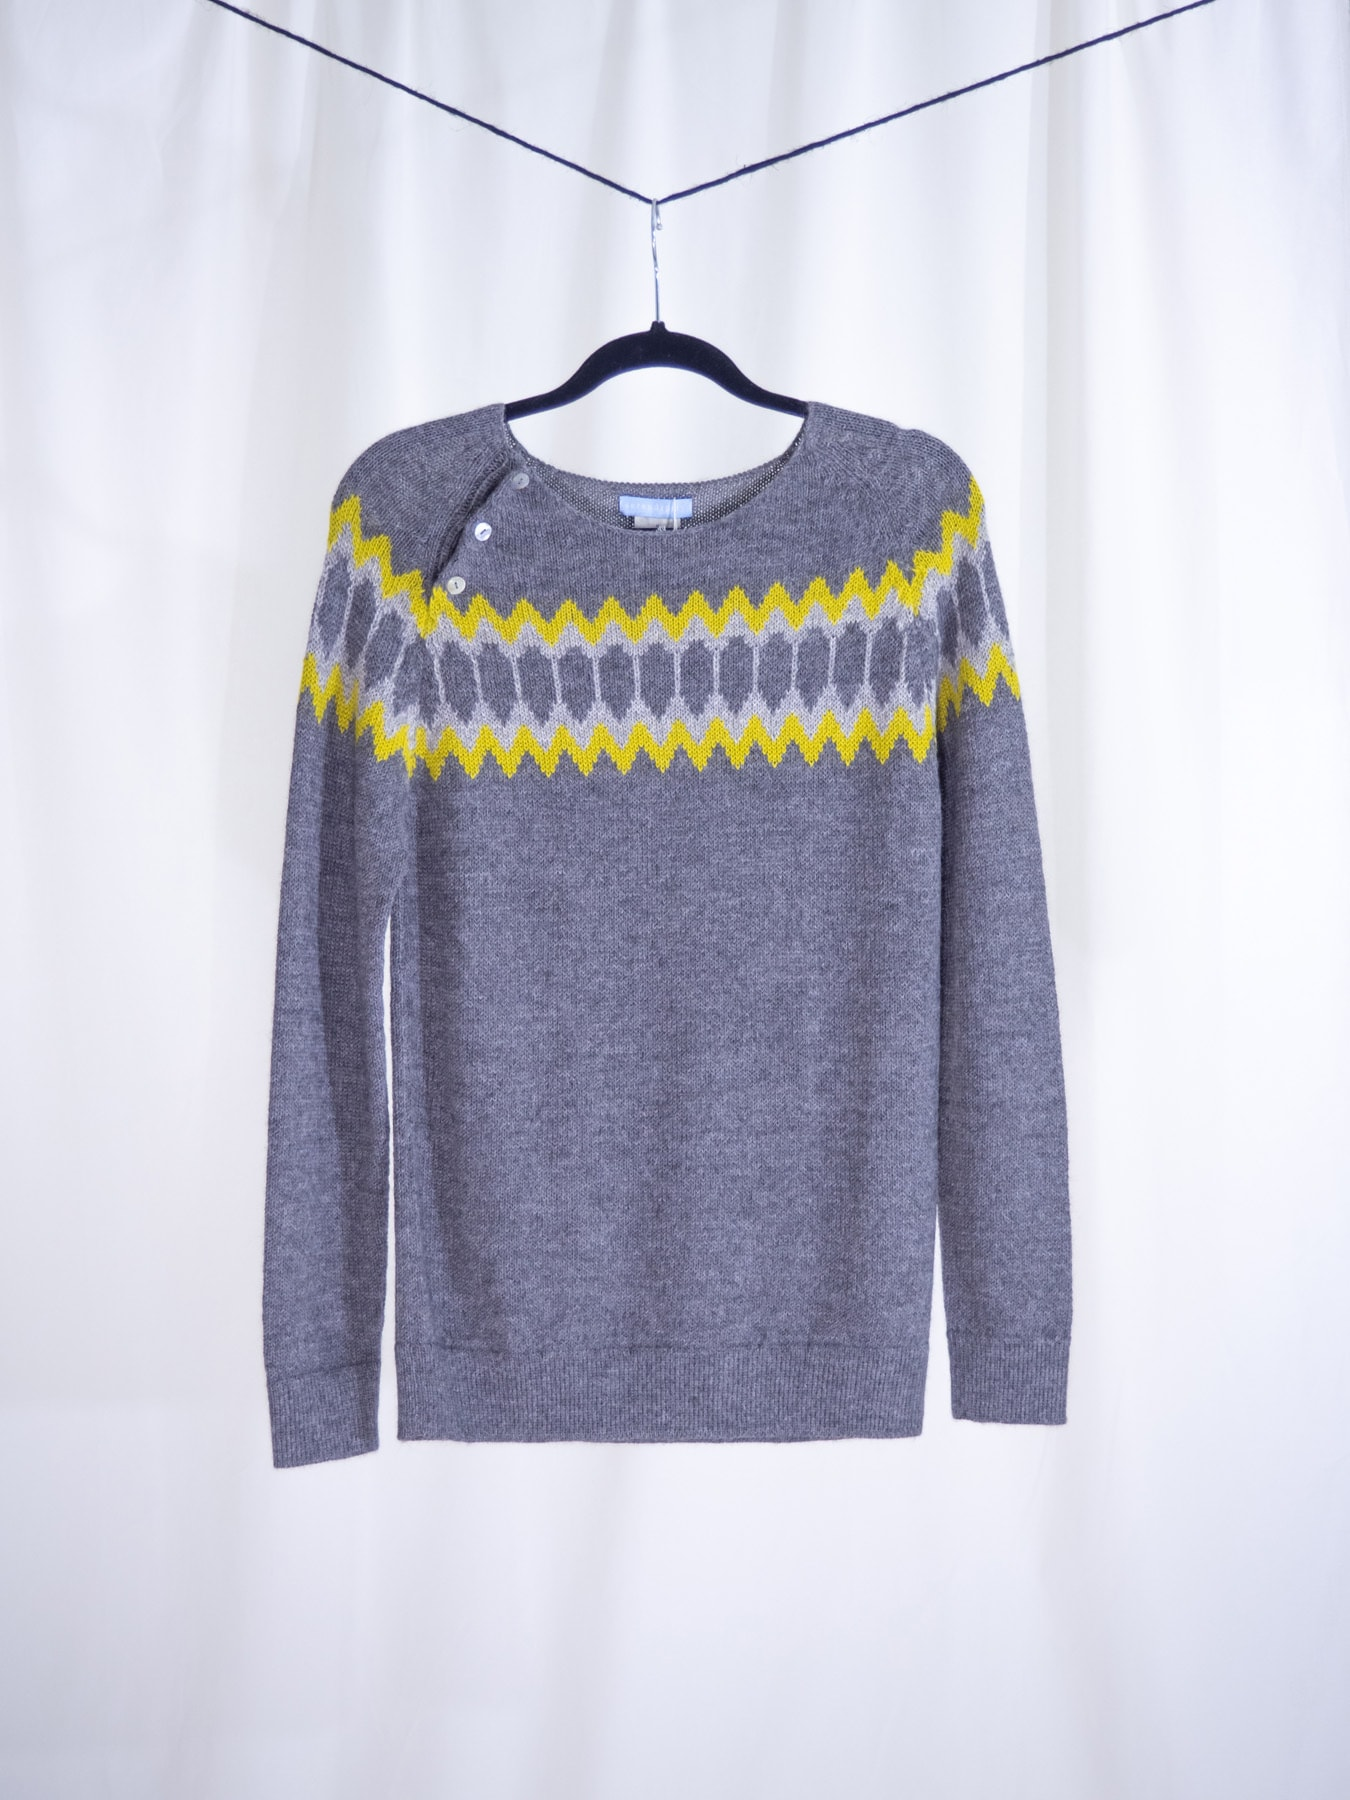 Raglan sweater grey and yellow